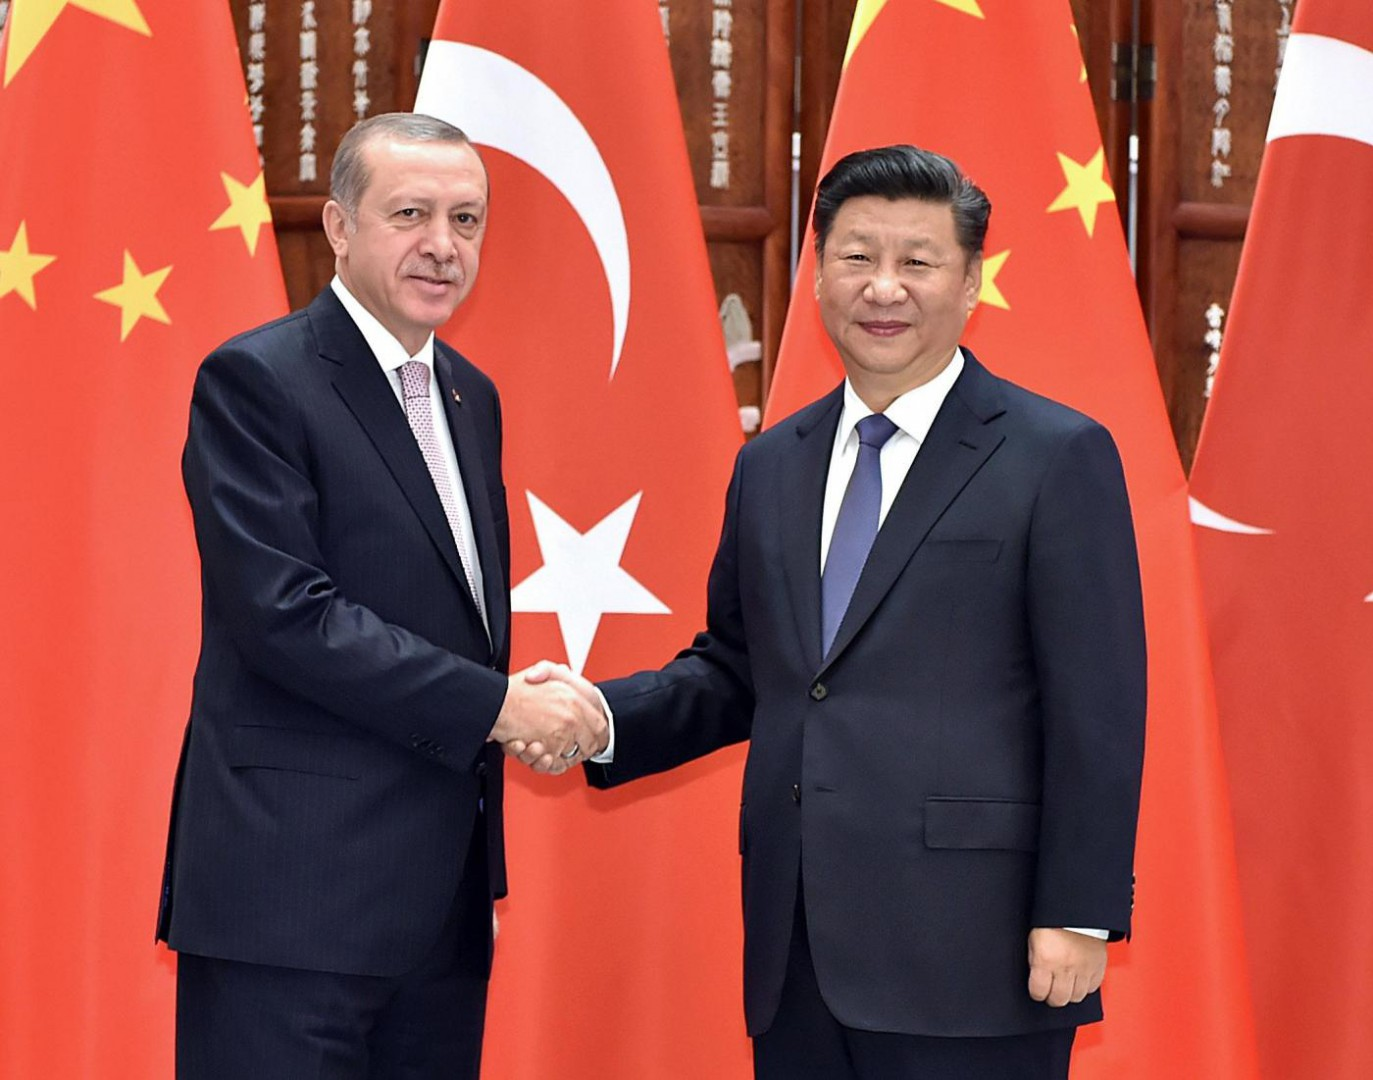 (160903) -- HANGZHOU, Sept. 3, 2016 (Xinhua) -- Chinese President Xi Jinping (R) meets with his Turkish counterpart Recep Tayyip Erdogan who came to Hangzhou to attend the G20 Summit in Hangzhou, capital city of east China's Zhejiang Province, Sept. 3, 2016. (Xinhua/Li Tao)(mp)